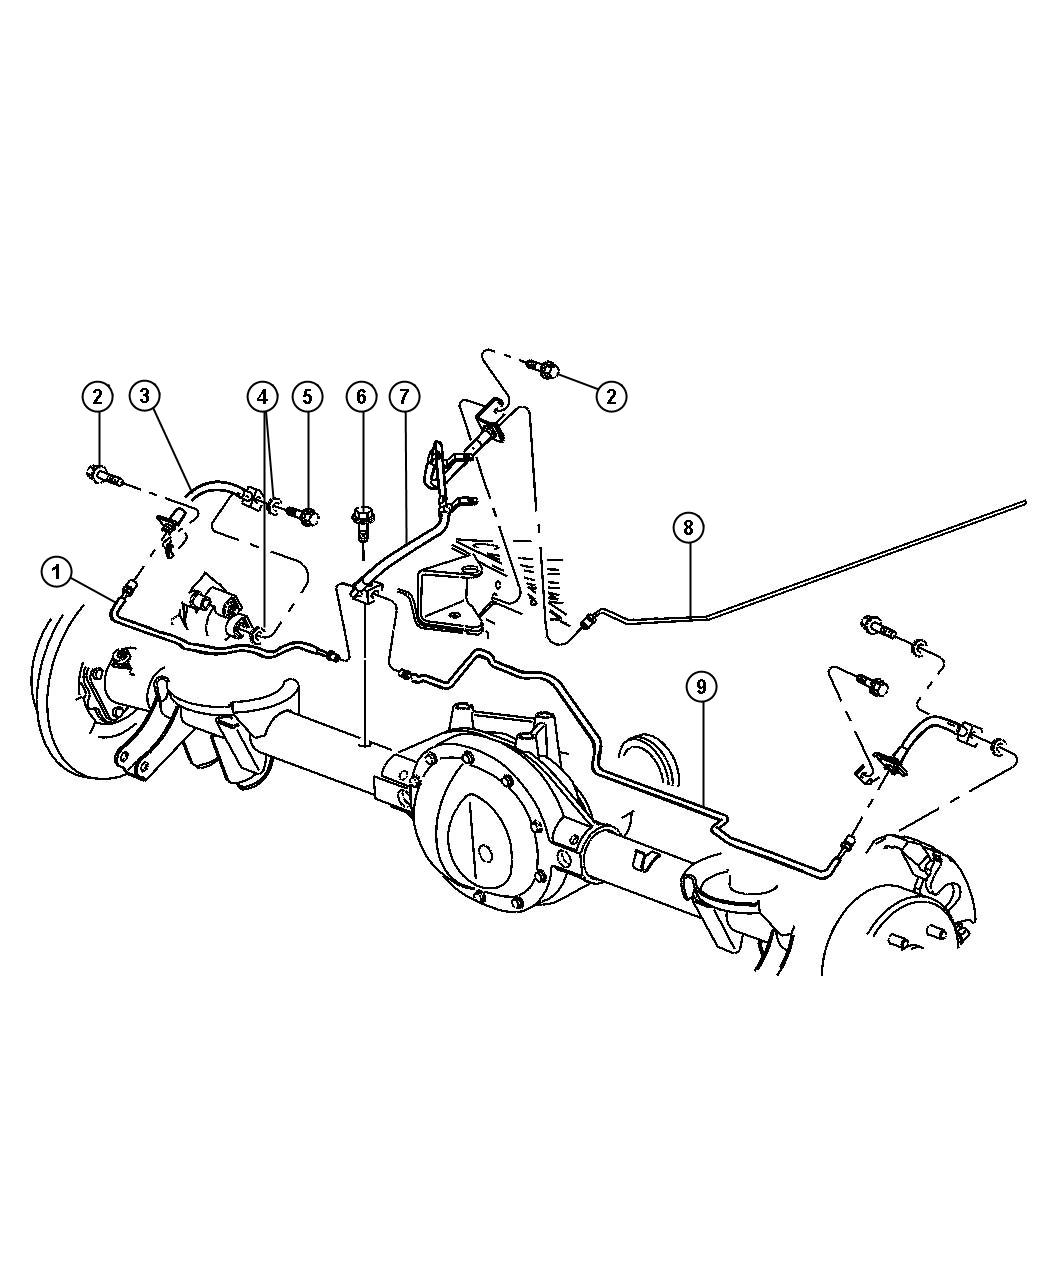 service manual  2008 jeep grand cherokee diagram showing